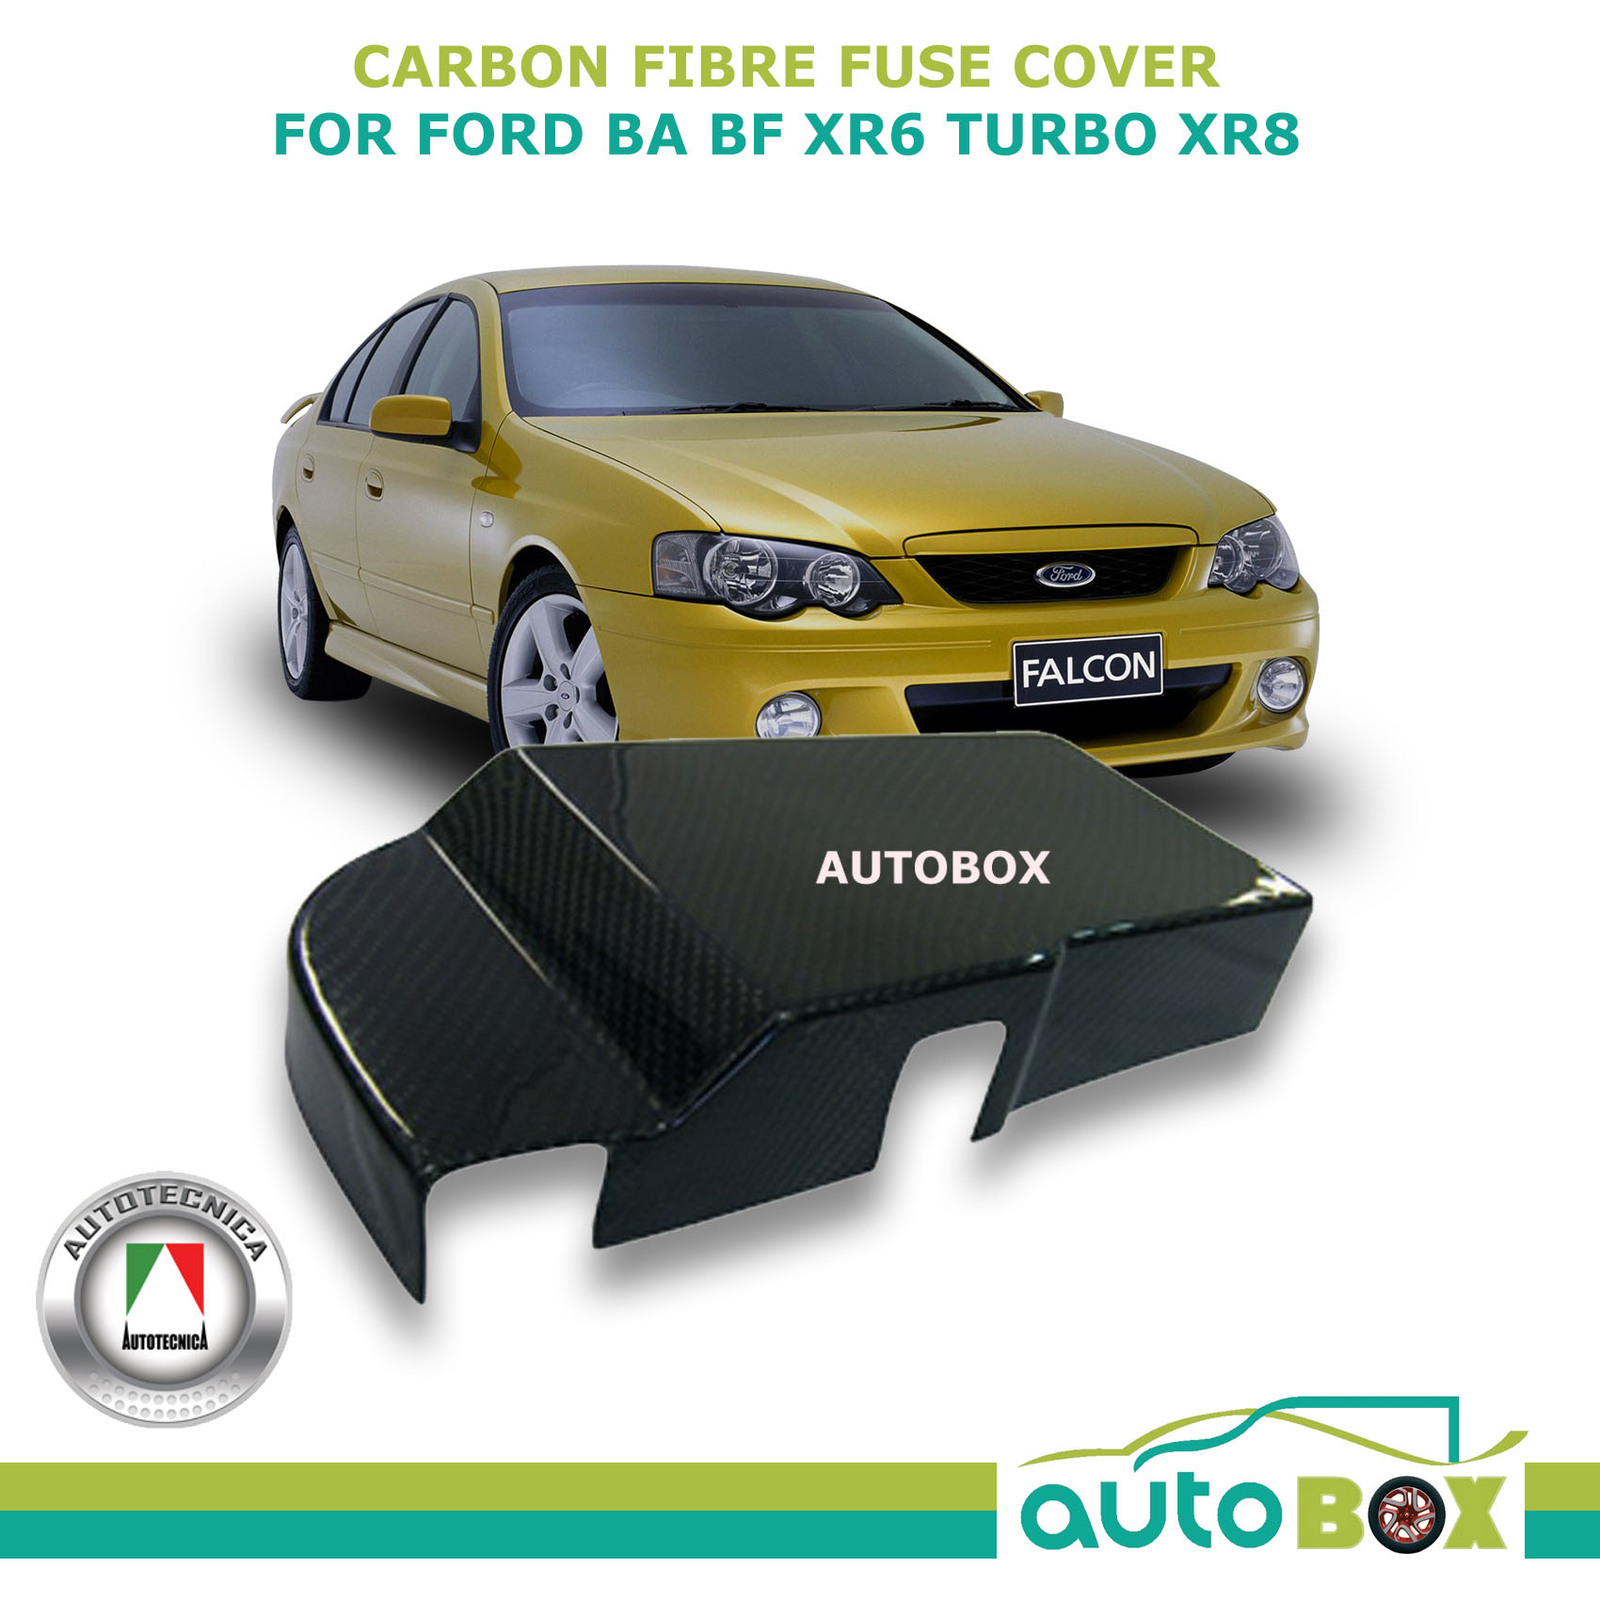 hight resolution of real carbon fibre fuse box cover ford ba bf xr6 turbo xr8 fpv gt gt p f6 typhoon